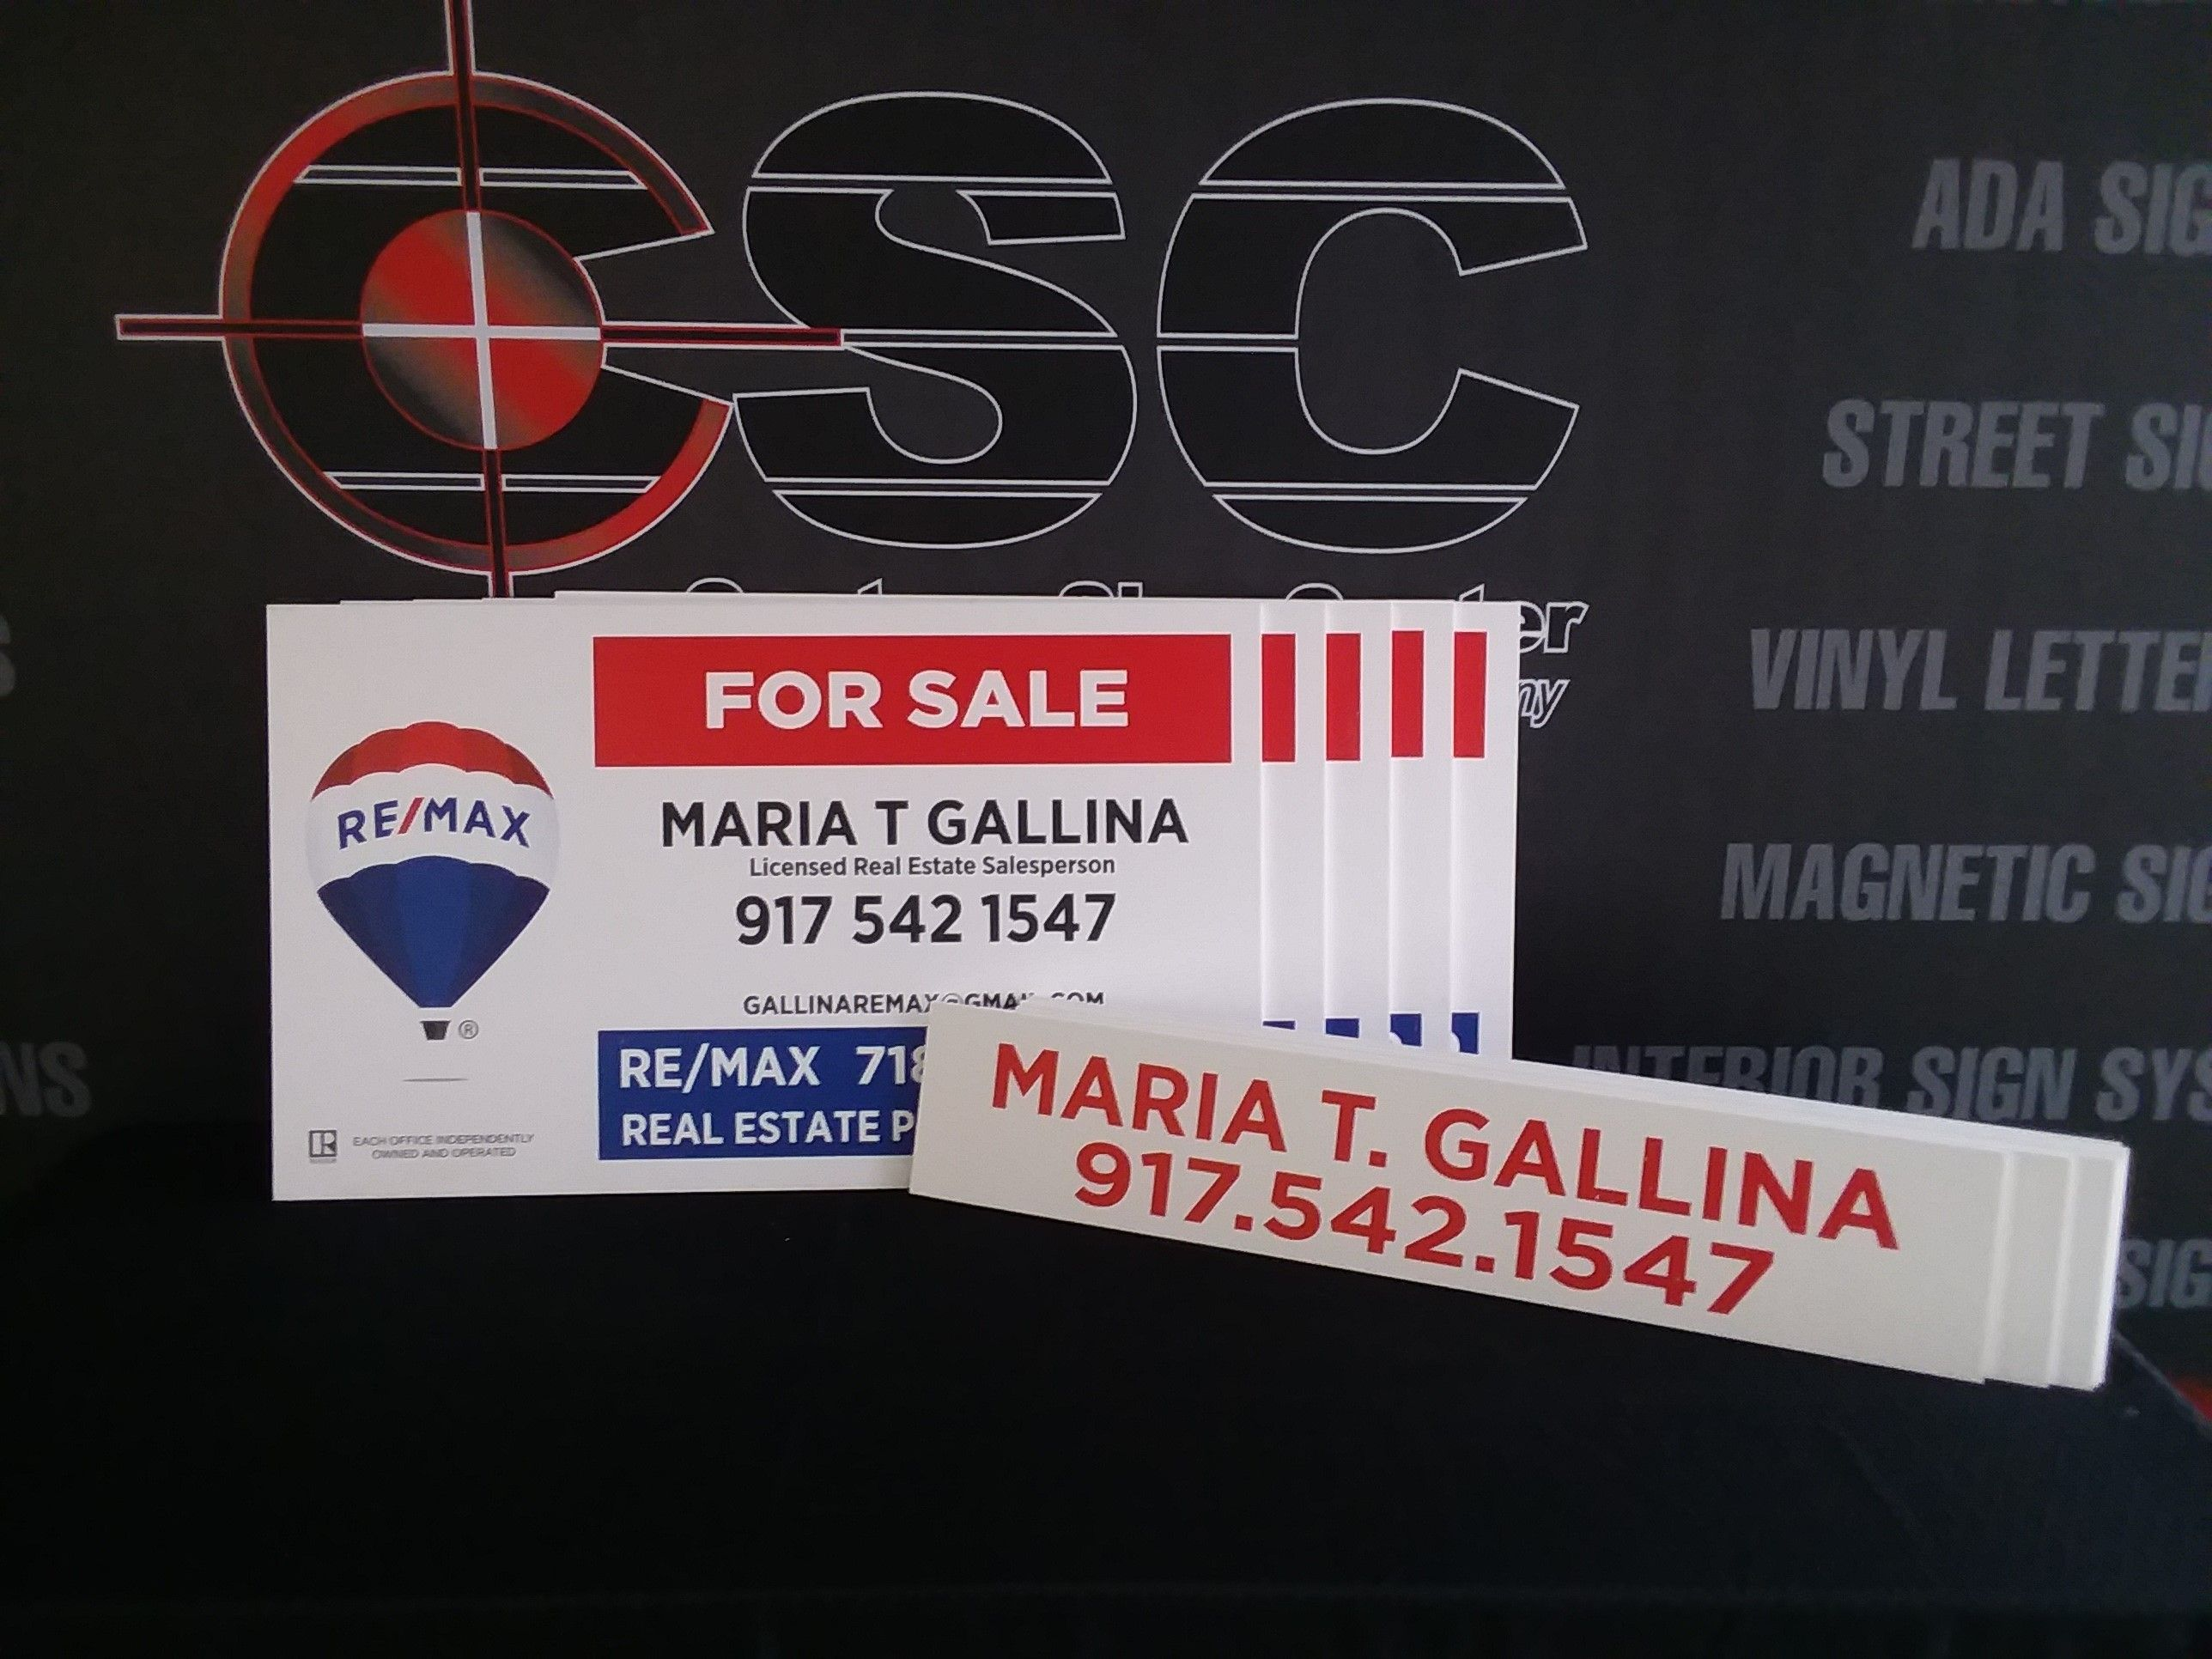 12c7bea0a92c Another completed job on time. Ship your signs anywhere! Easy online tools,  fast turnaround and #REMAXCompliant custom signs so why go anyplace else?